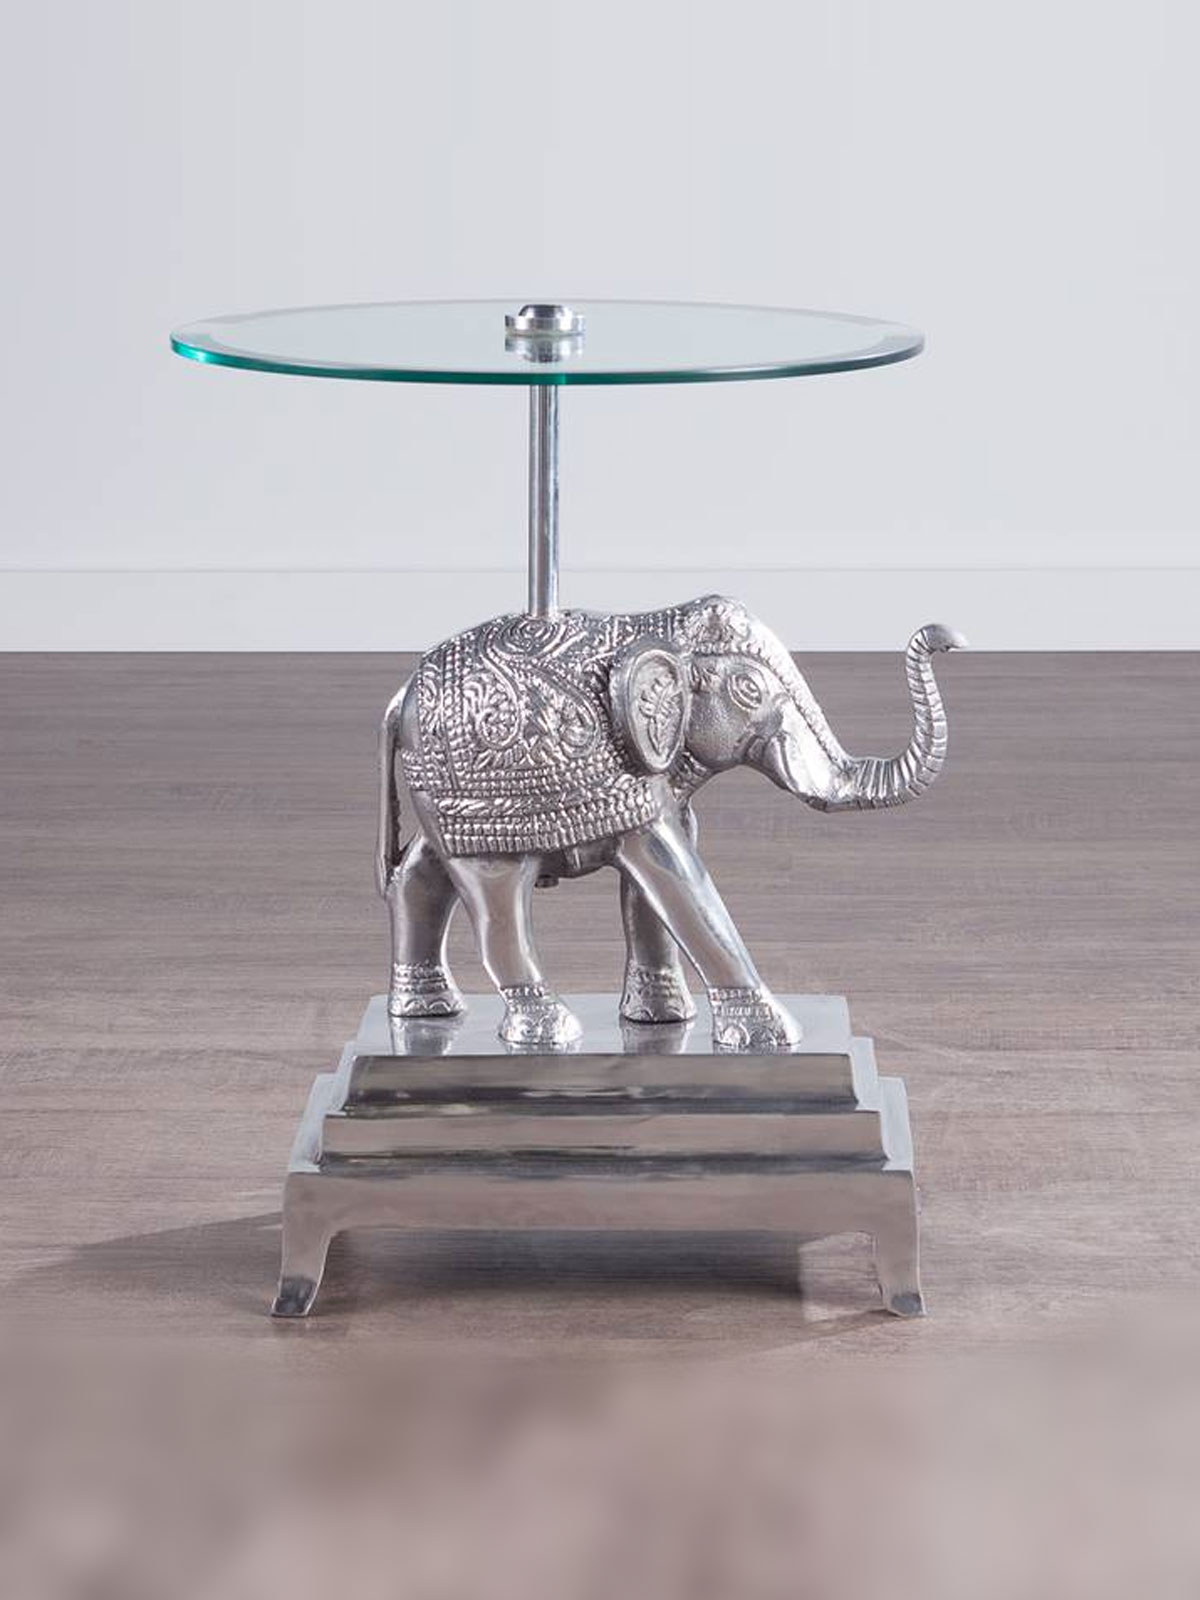 elephant metal accent table ludovik click glass end tables and coffee polka dot tablecloth round kitchen sets for safavieh top pottery barn white floor lamp light gray area rug